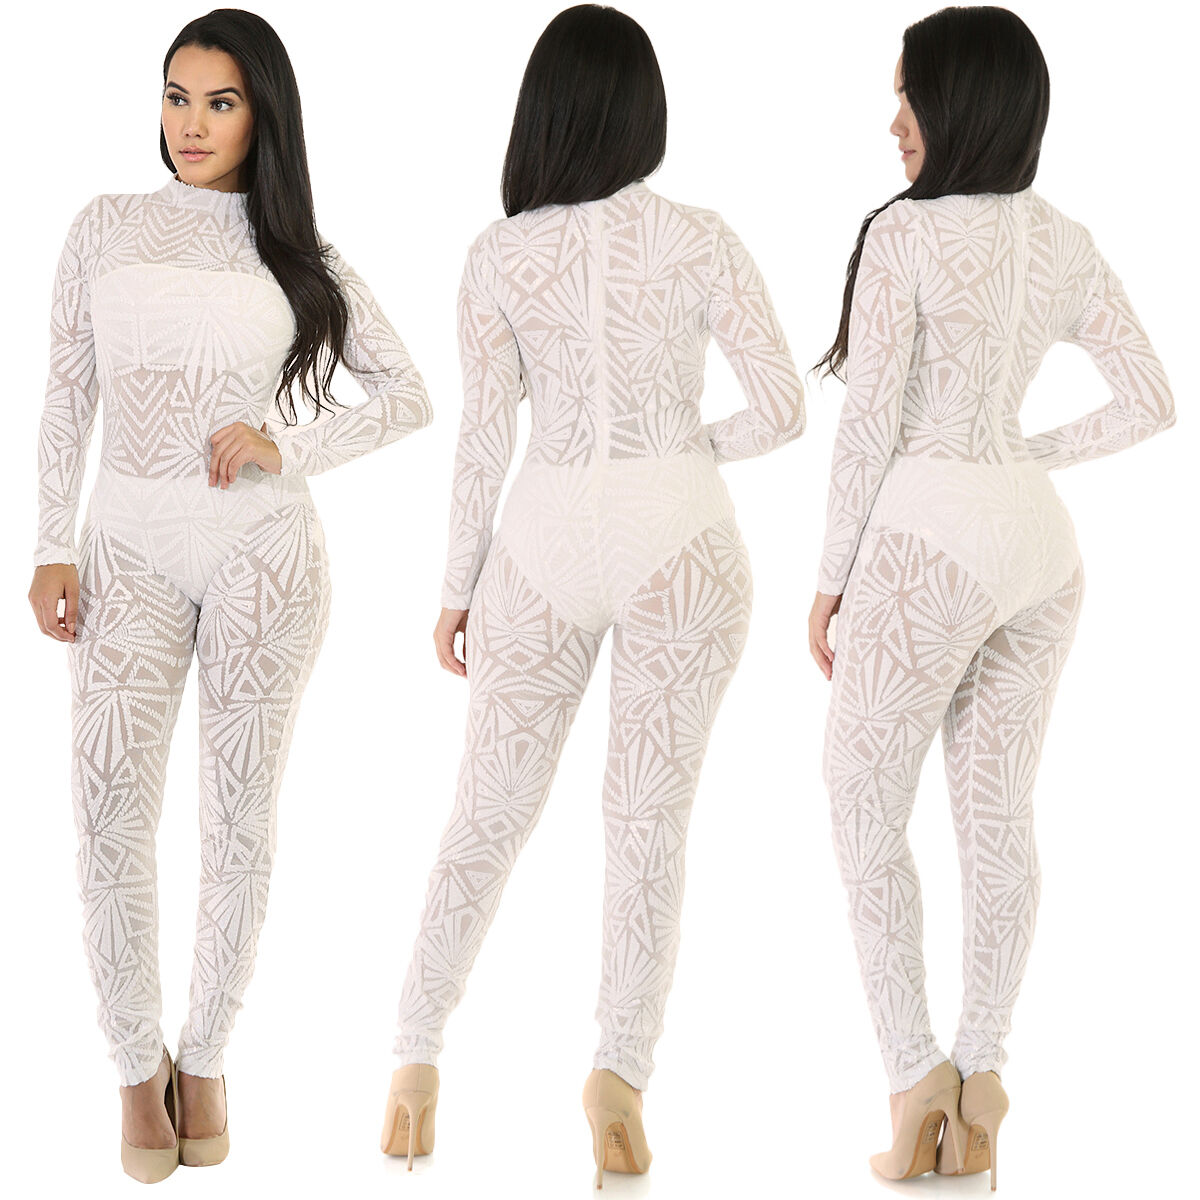 c4a6a3eb471c Details about Women Sexy Long Sleeve See Through Mesh Sequin Jumpsuit  Playsuit Bodysuit Club